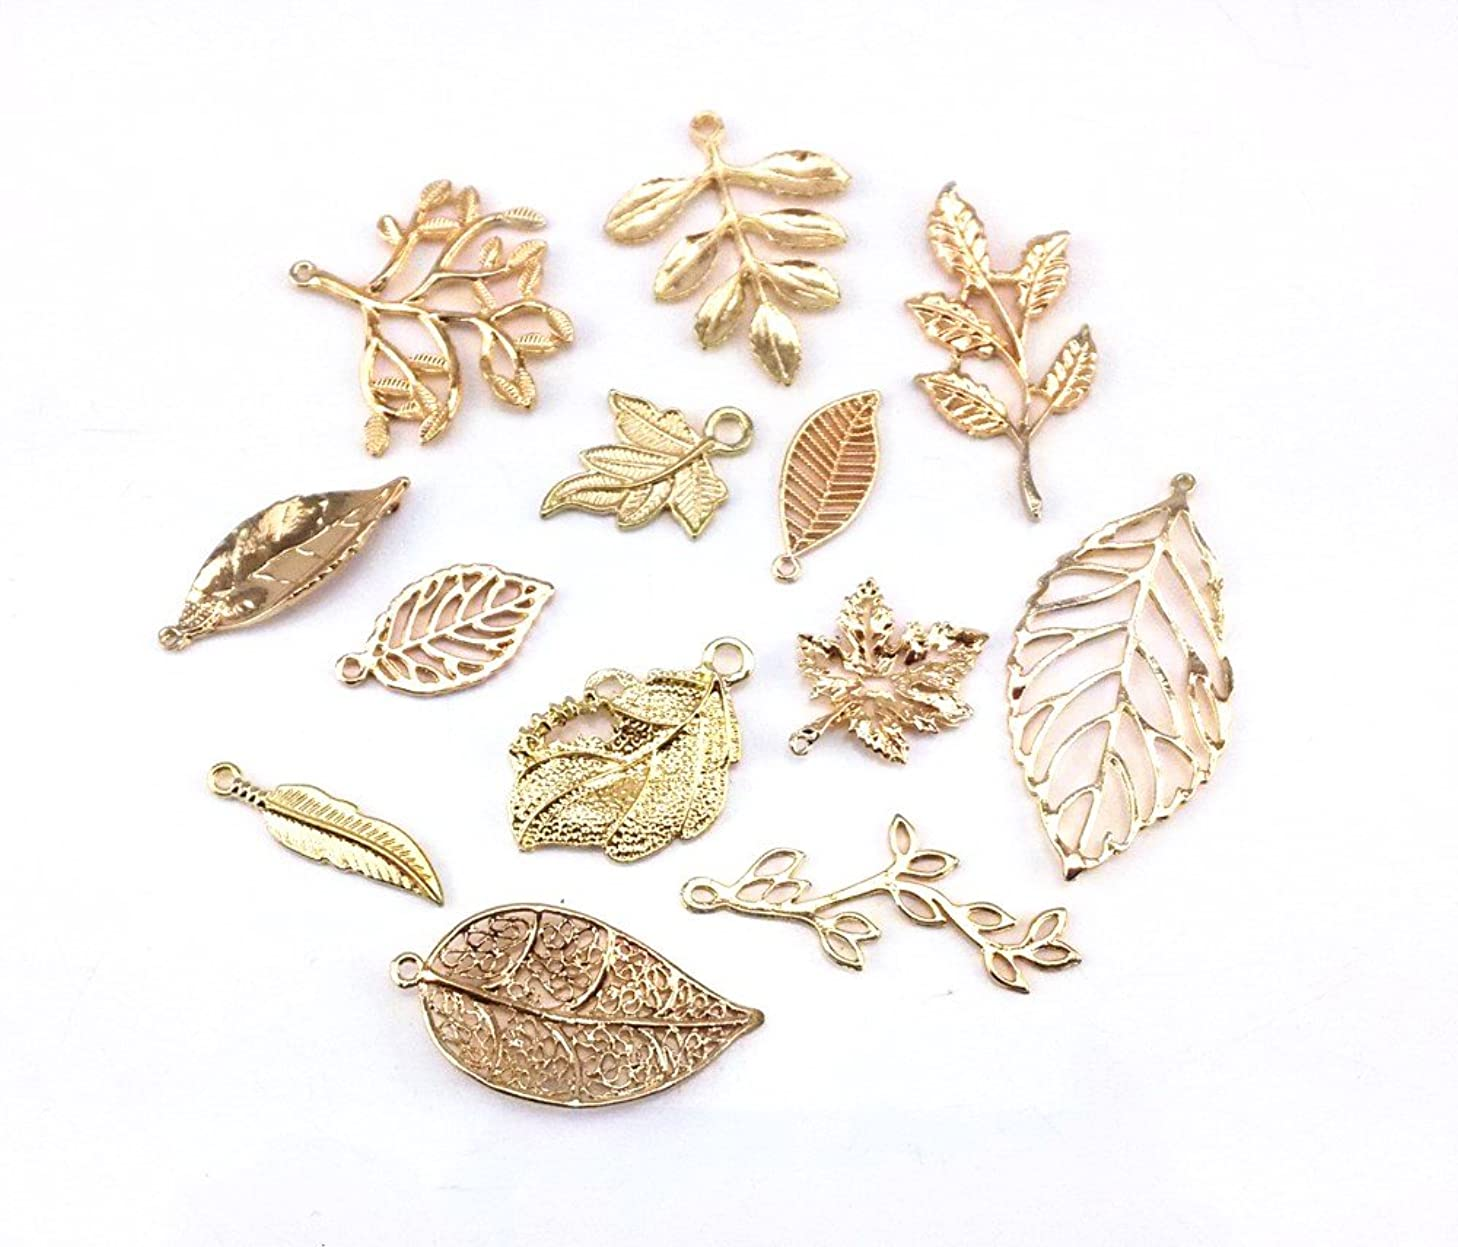 yueton 13pcs Different Style Gold Plated Metal Leaf Shape Charms Pendant DIY Craft Jewelry Making Accessory